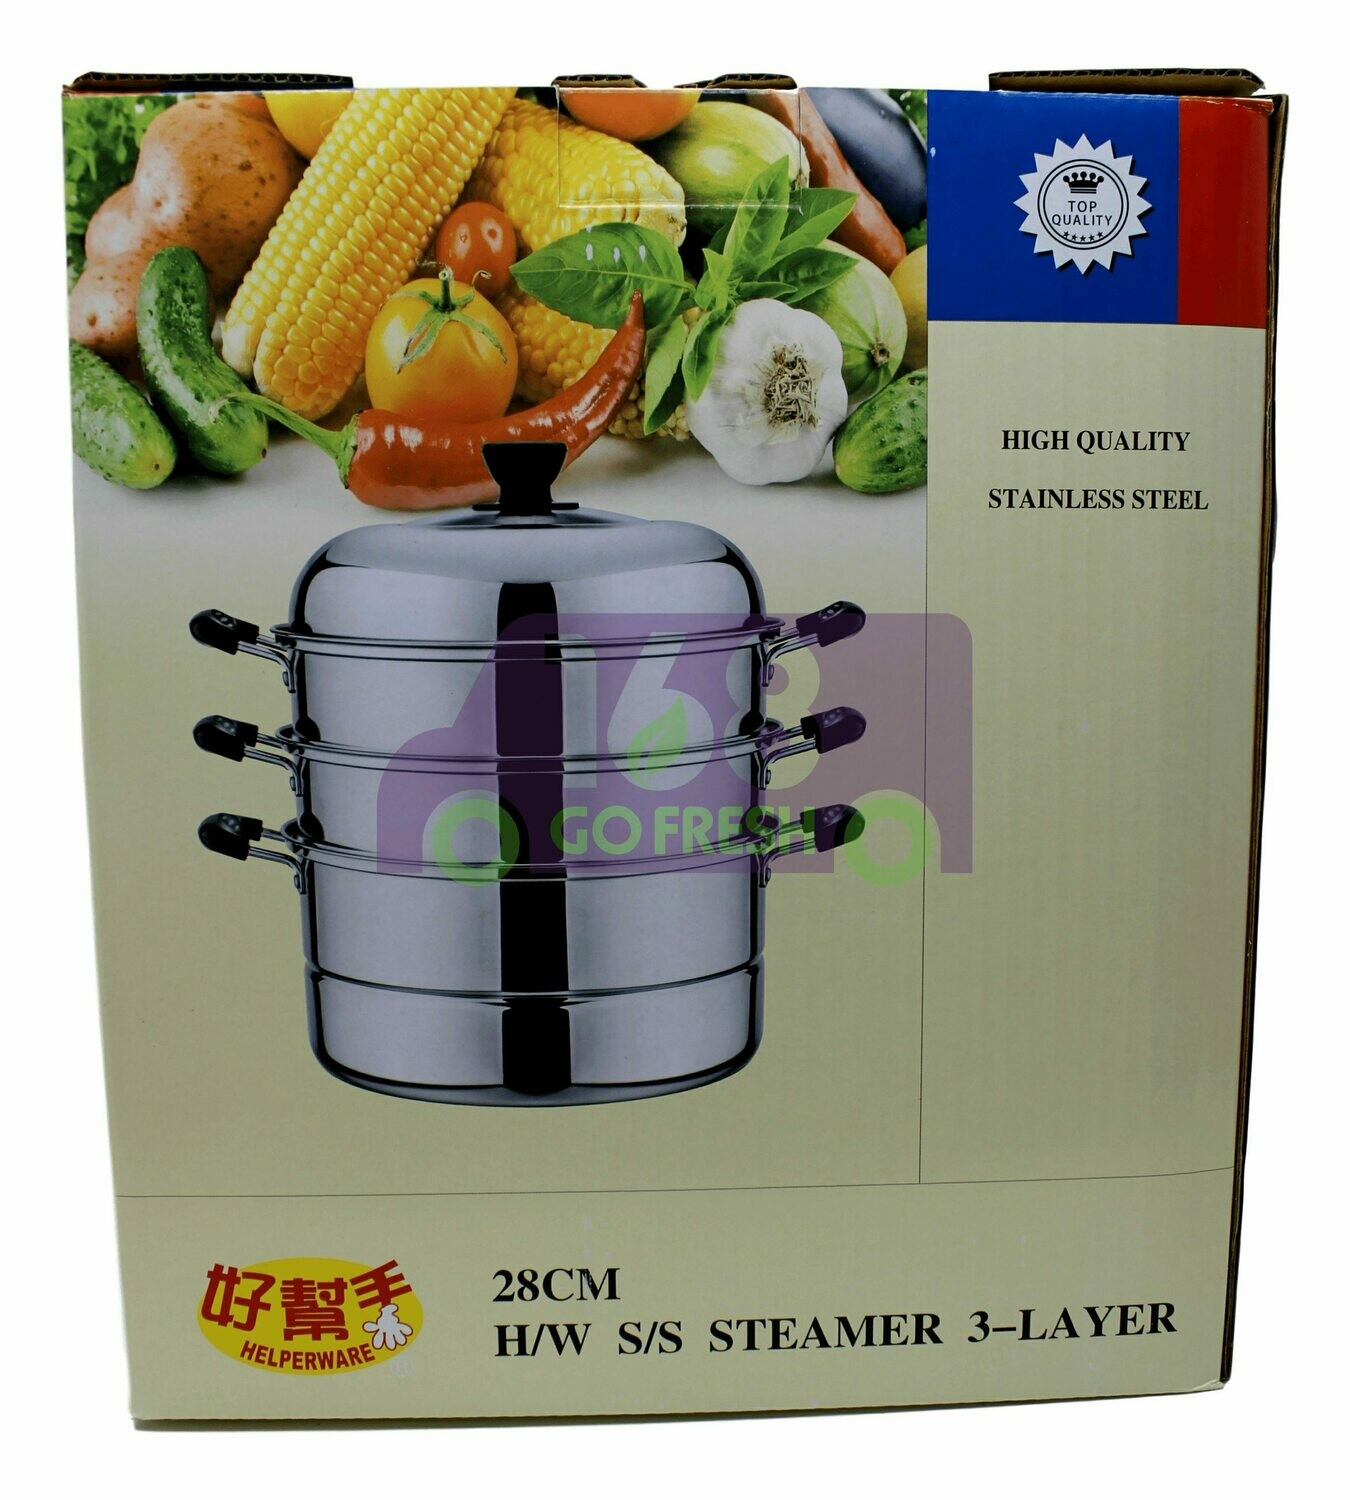 28 cm stainless steel 3-layered steamer 好帮手 28cm 三层不锈钢蒸锅